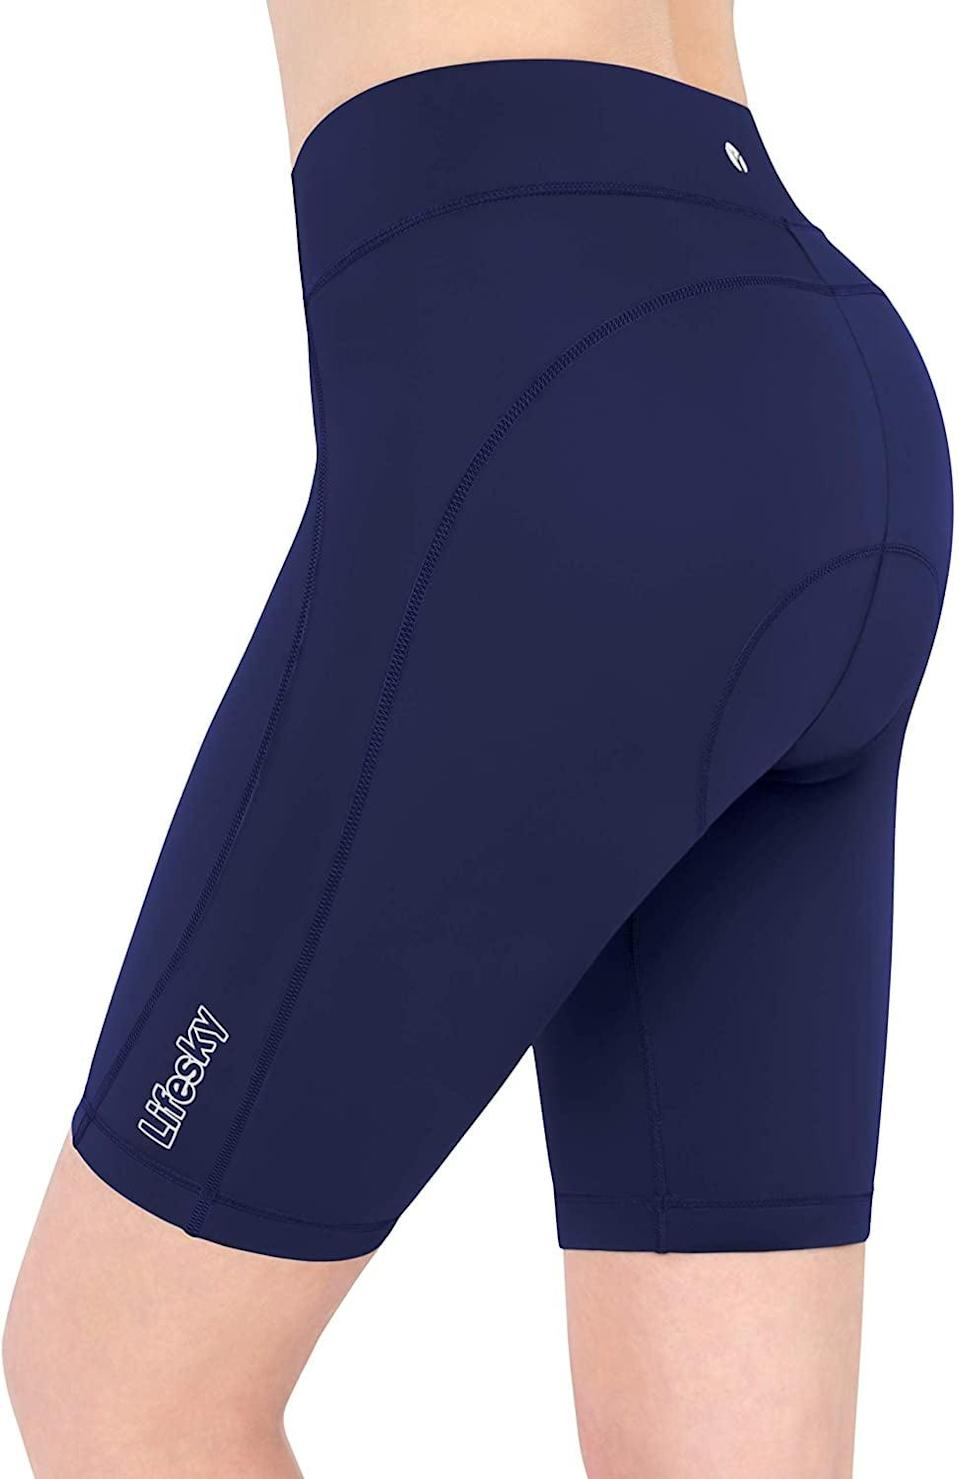 <p>As if shock-absorbing padding wasn't enough, these <span>Life Sky Biker Shorts</span> ($18 - $22) also have hidden pockets! You'll be surprised at how much of a difference this makes when you no longer have to deal with the distraction of your keys rattling around in the cupholder as you pedal, because they'll be safe in your pocket instead.</p>